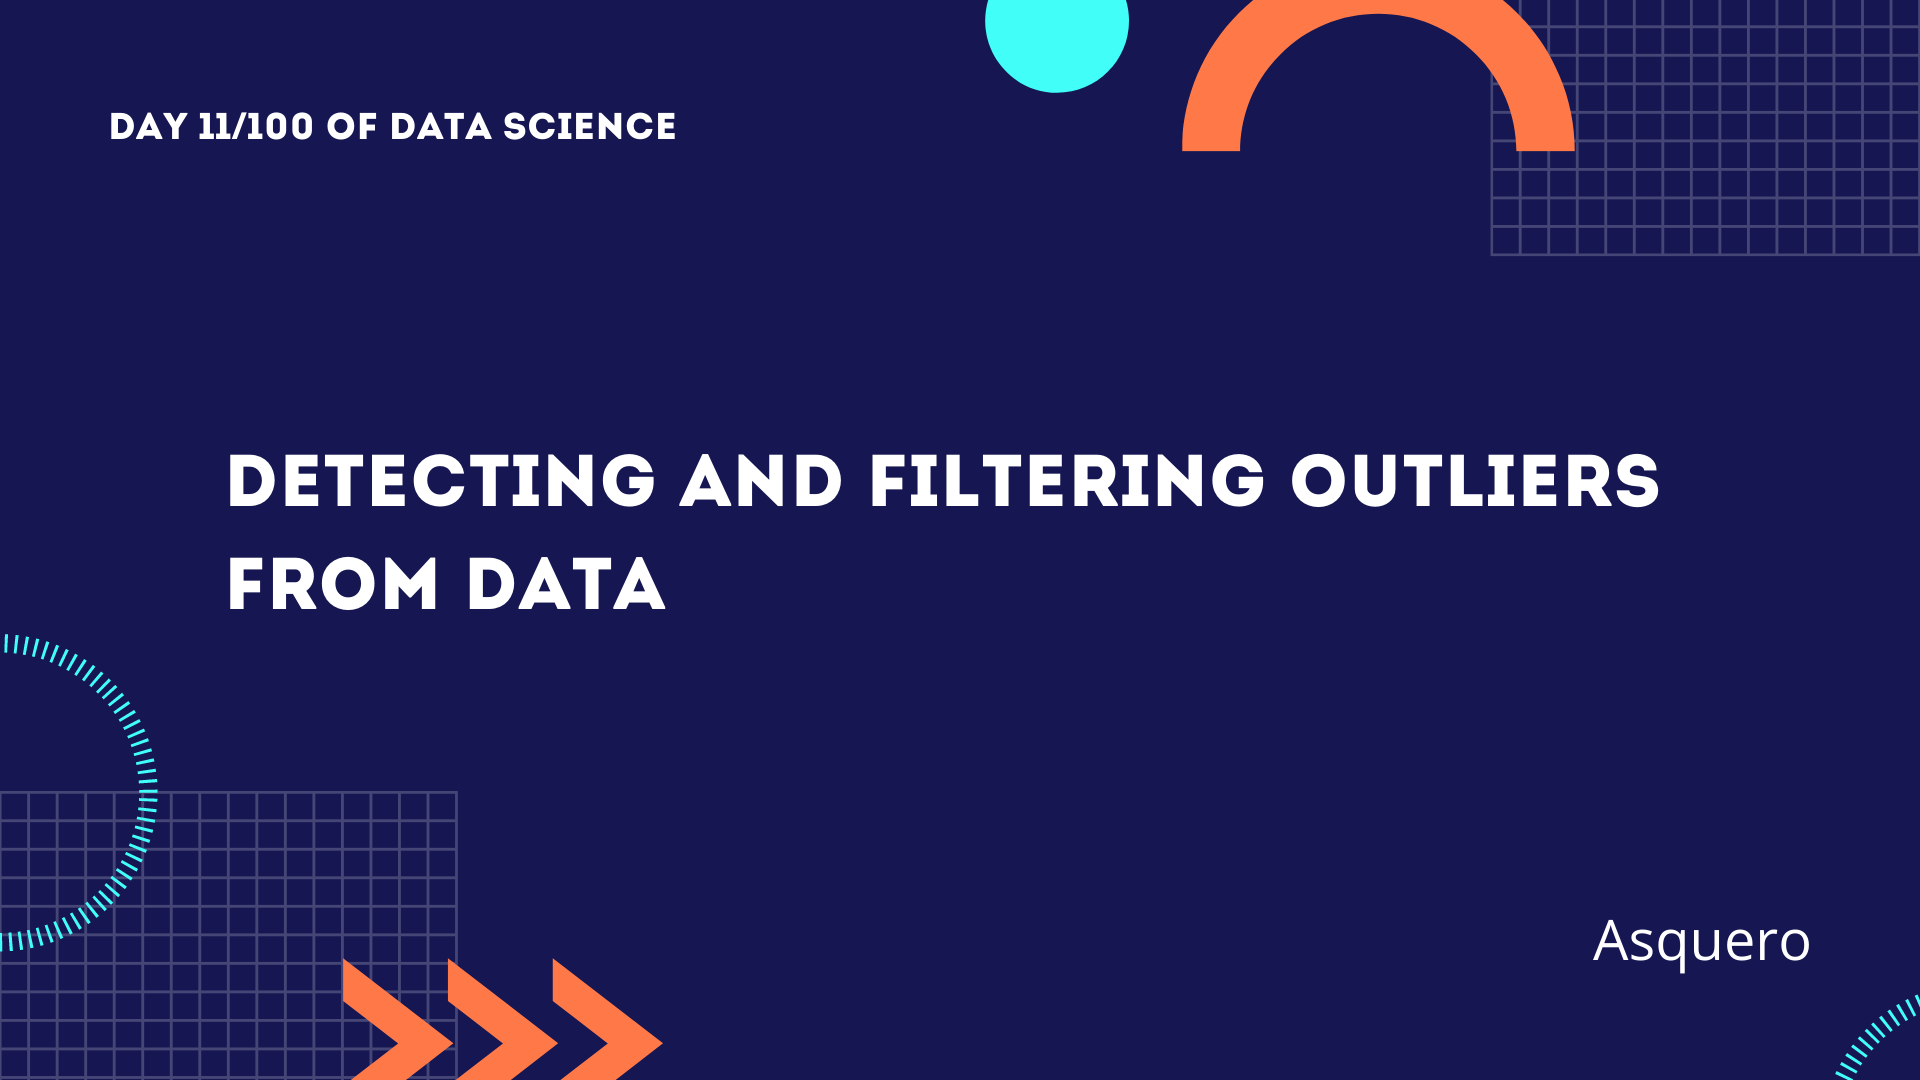 Detecting and Filtering Outliers from Data